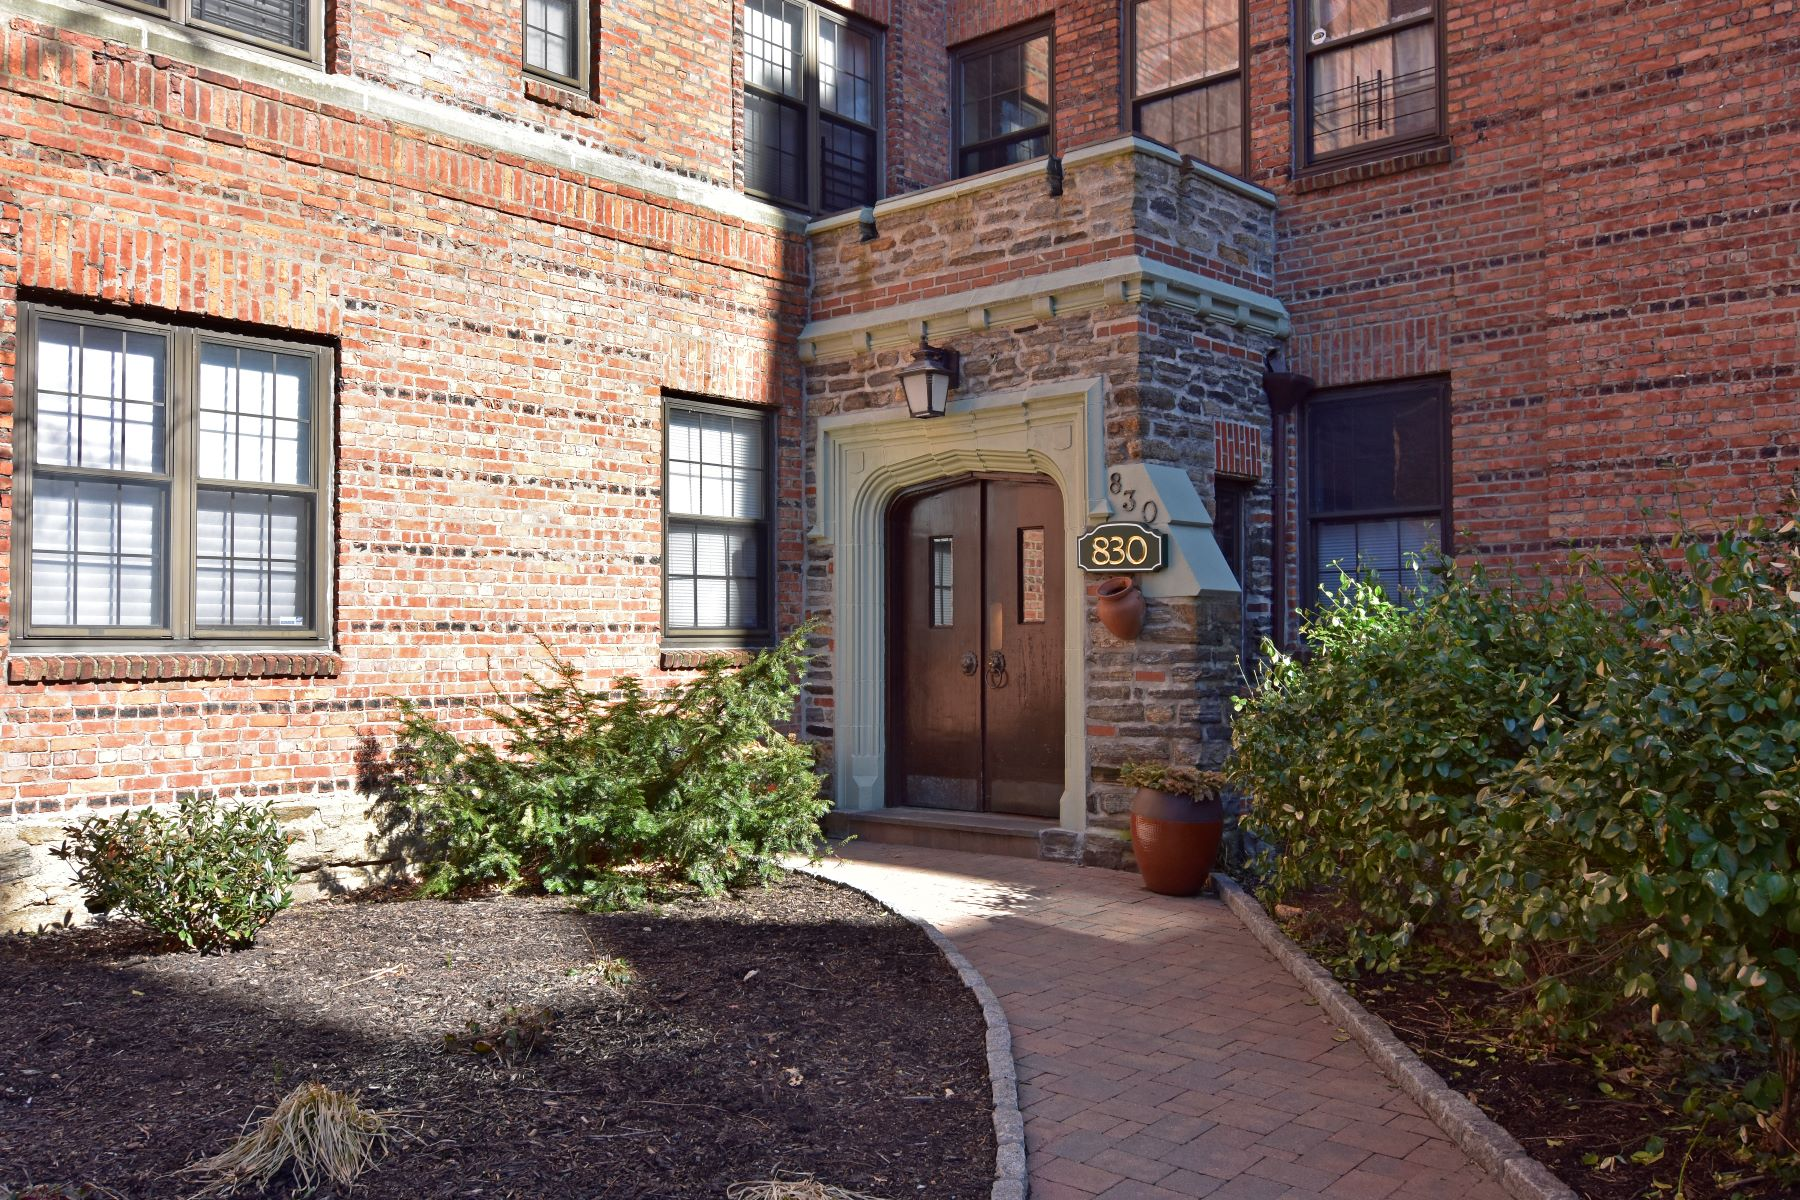 Co-op for Sale at Cozy One-Bedroom 830 Bronx River Road 7C Bronxville, New York 10708 United States